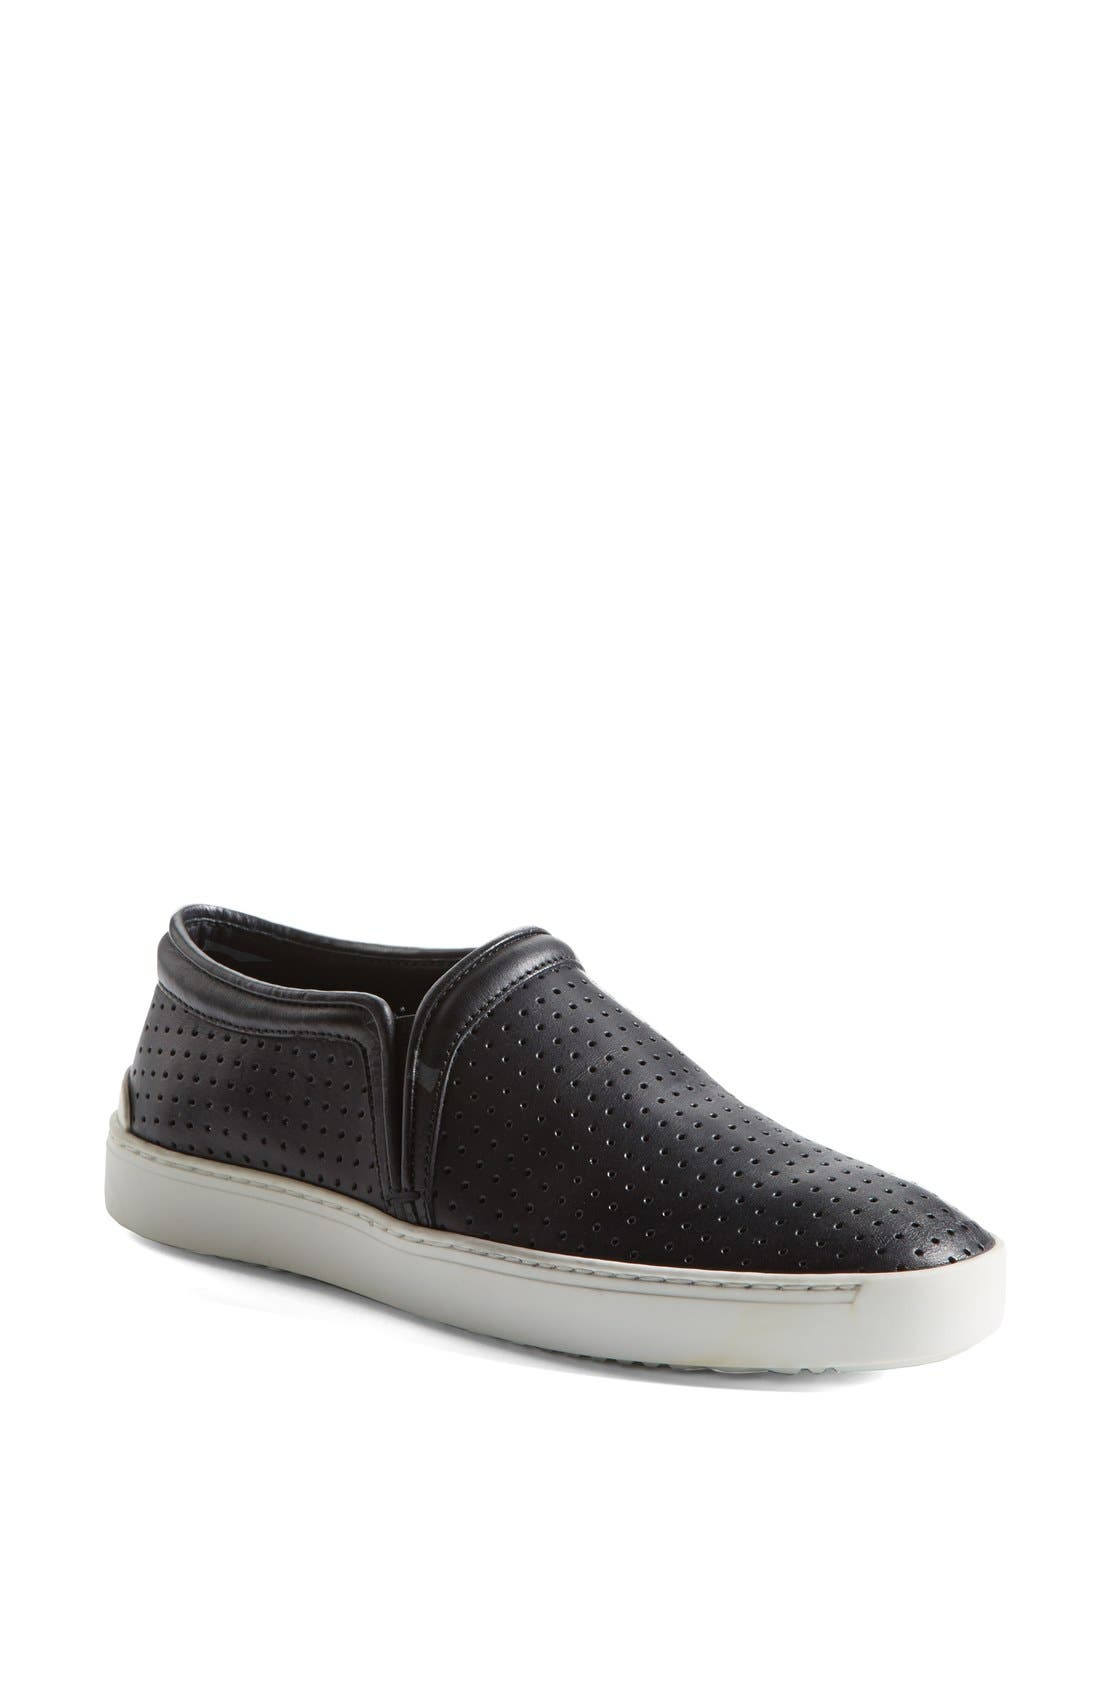 'Kent' Perforated Leather Slip-On,                             Main thumbnail 1, color,                             001